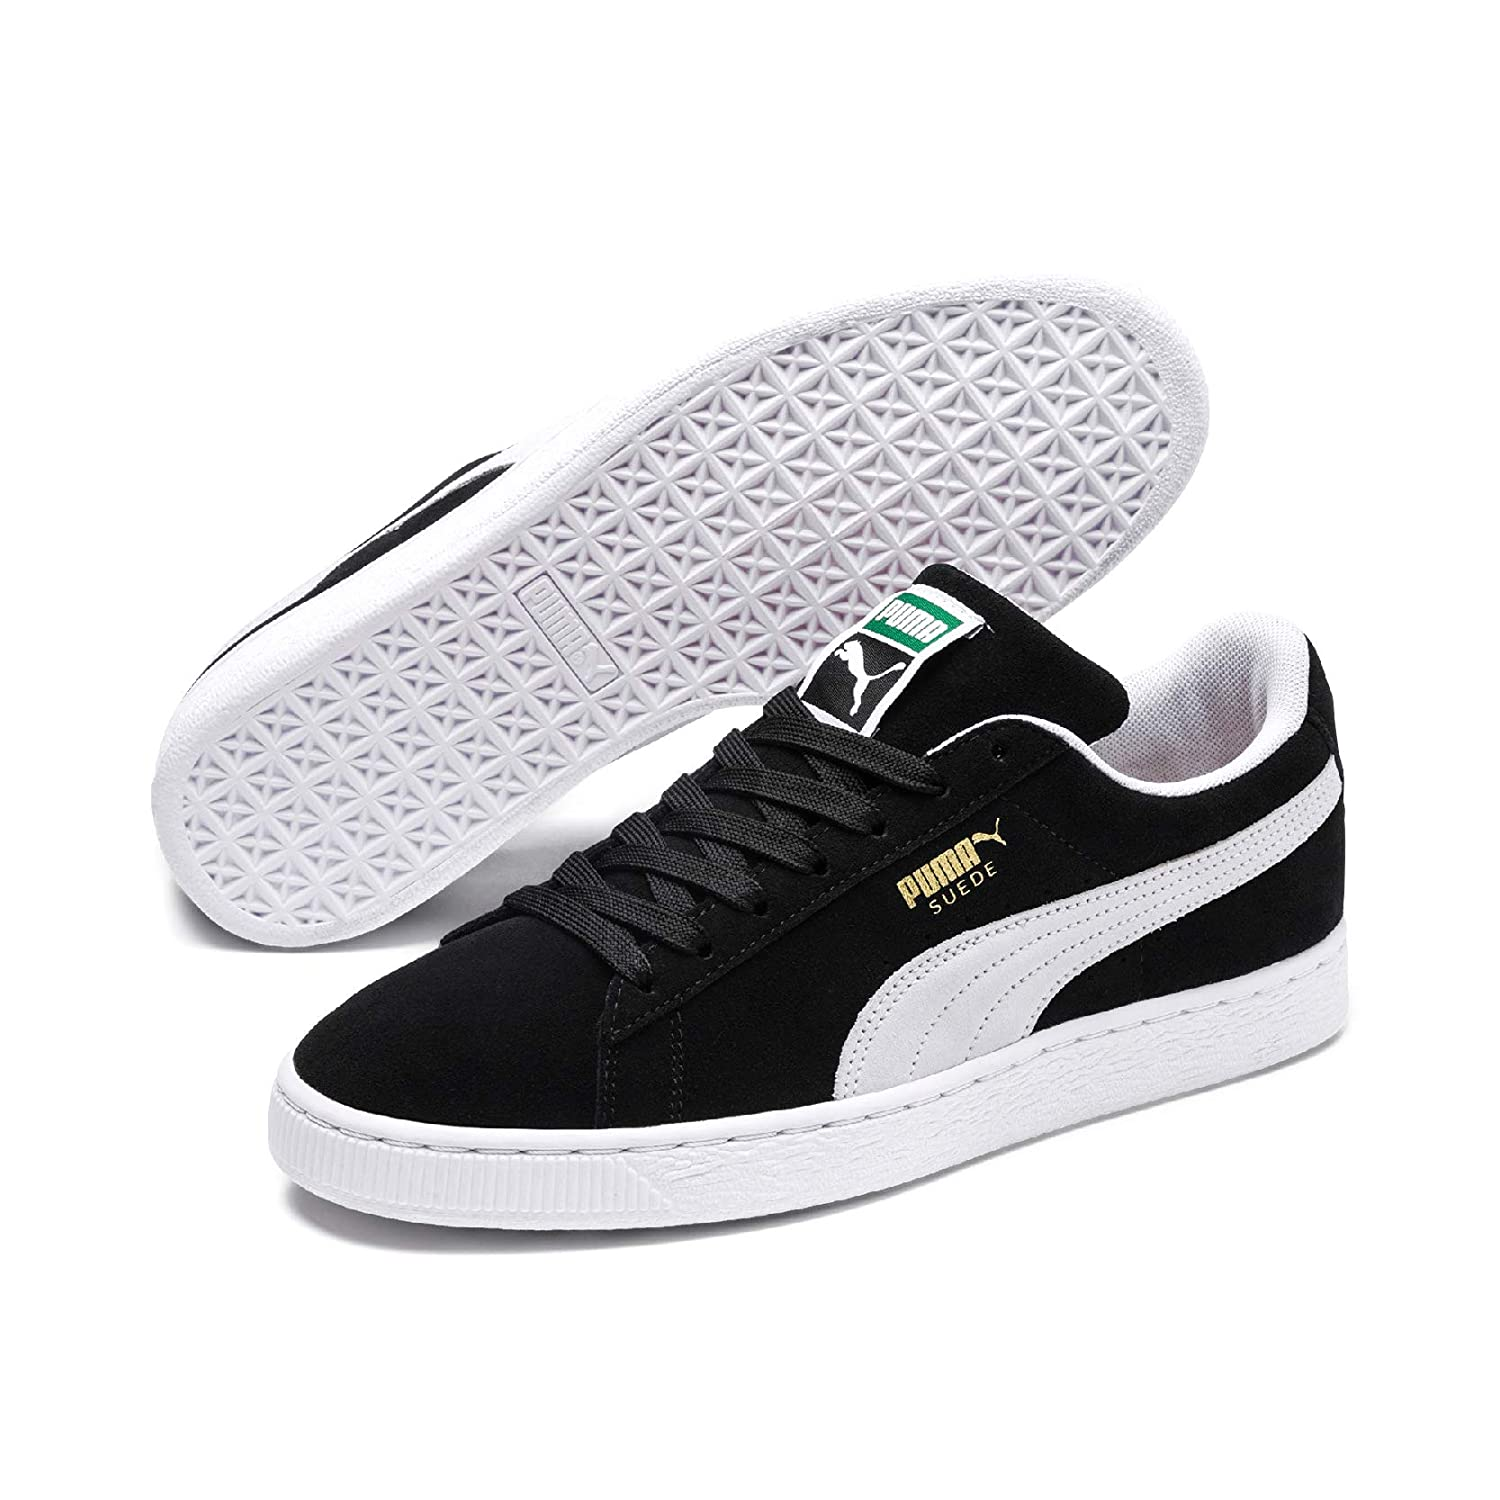 8822a8dfa9e0 Amazon.com  PUMA Select Men s Suede Classic Plus Sneakers  Puma  Shoes